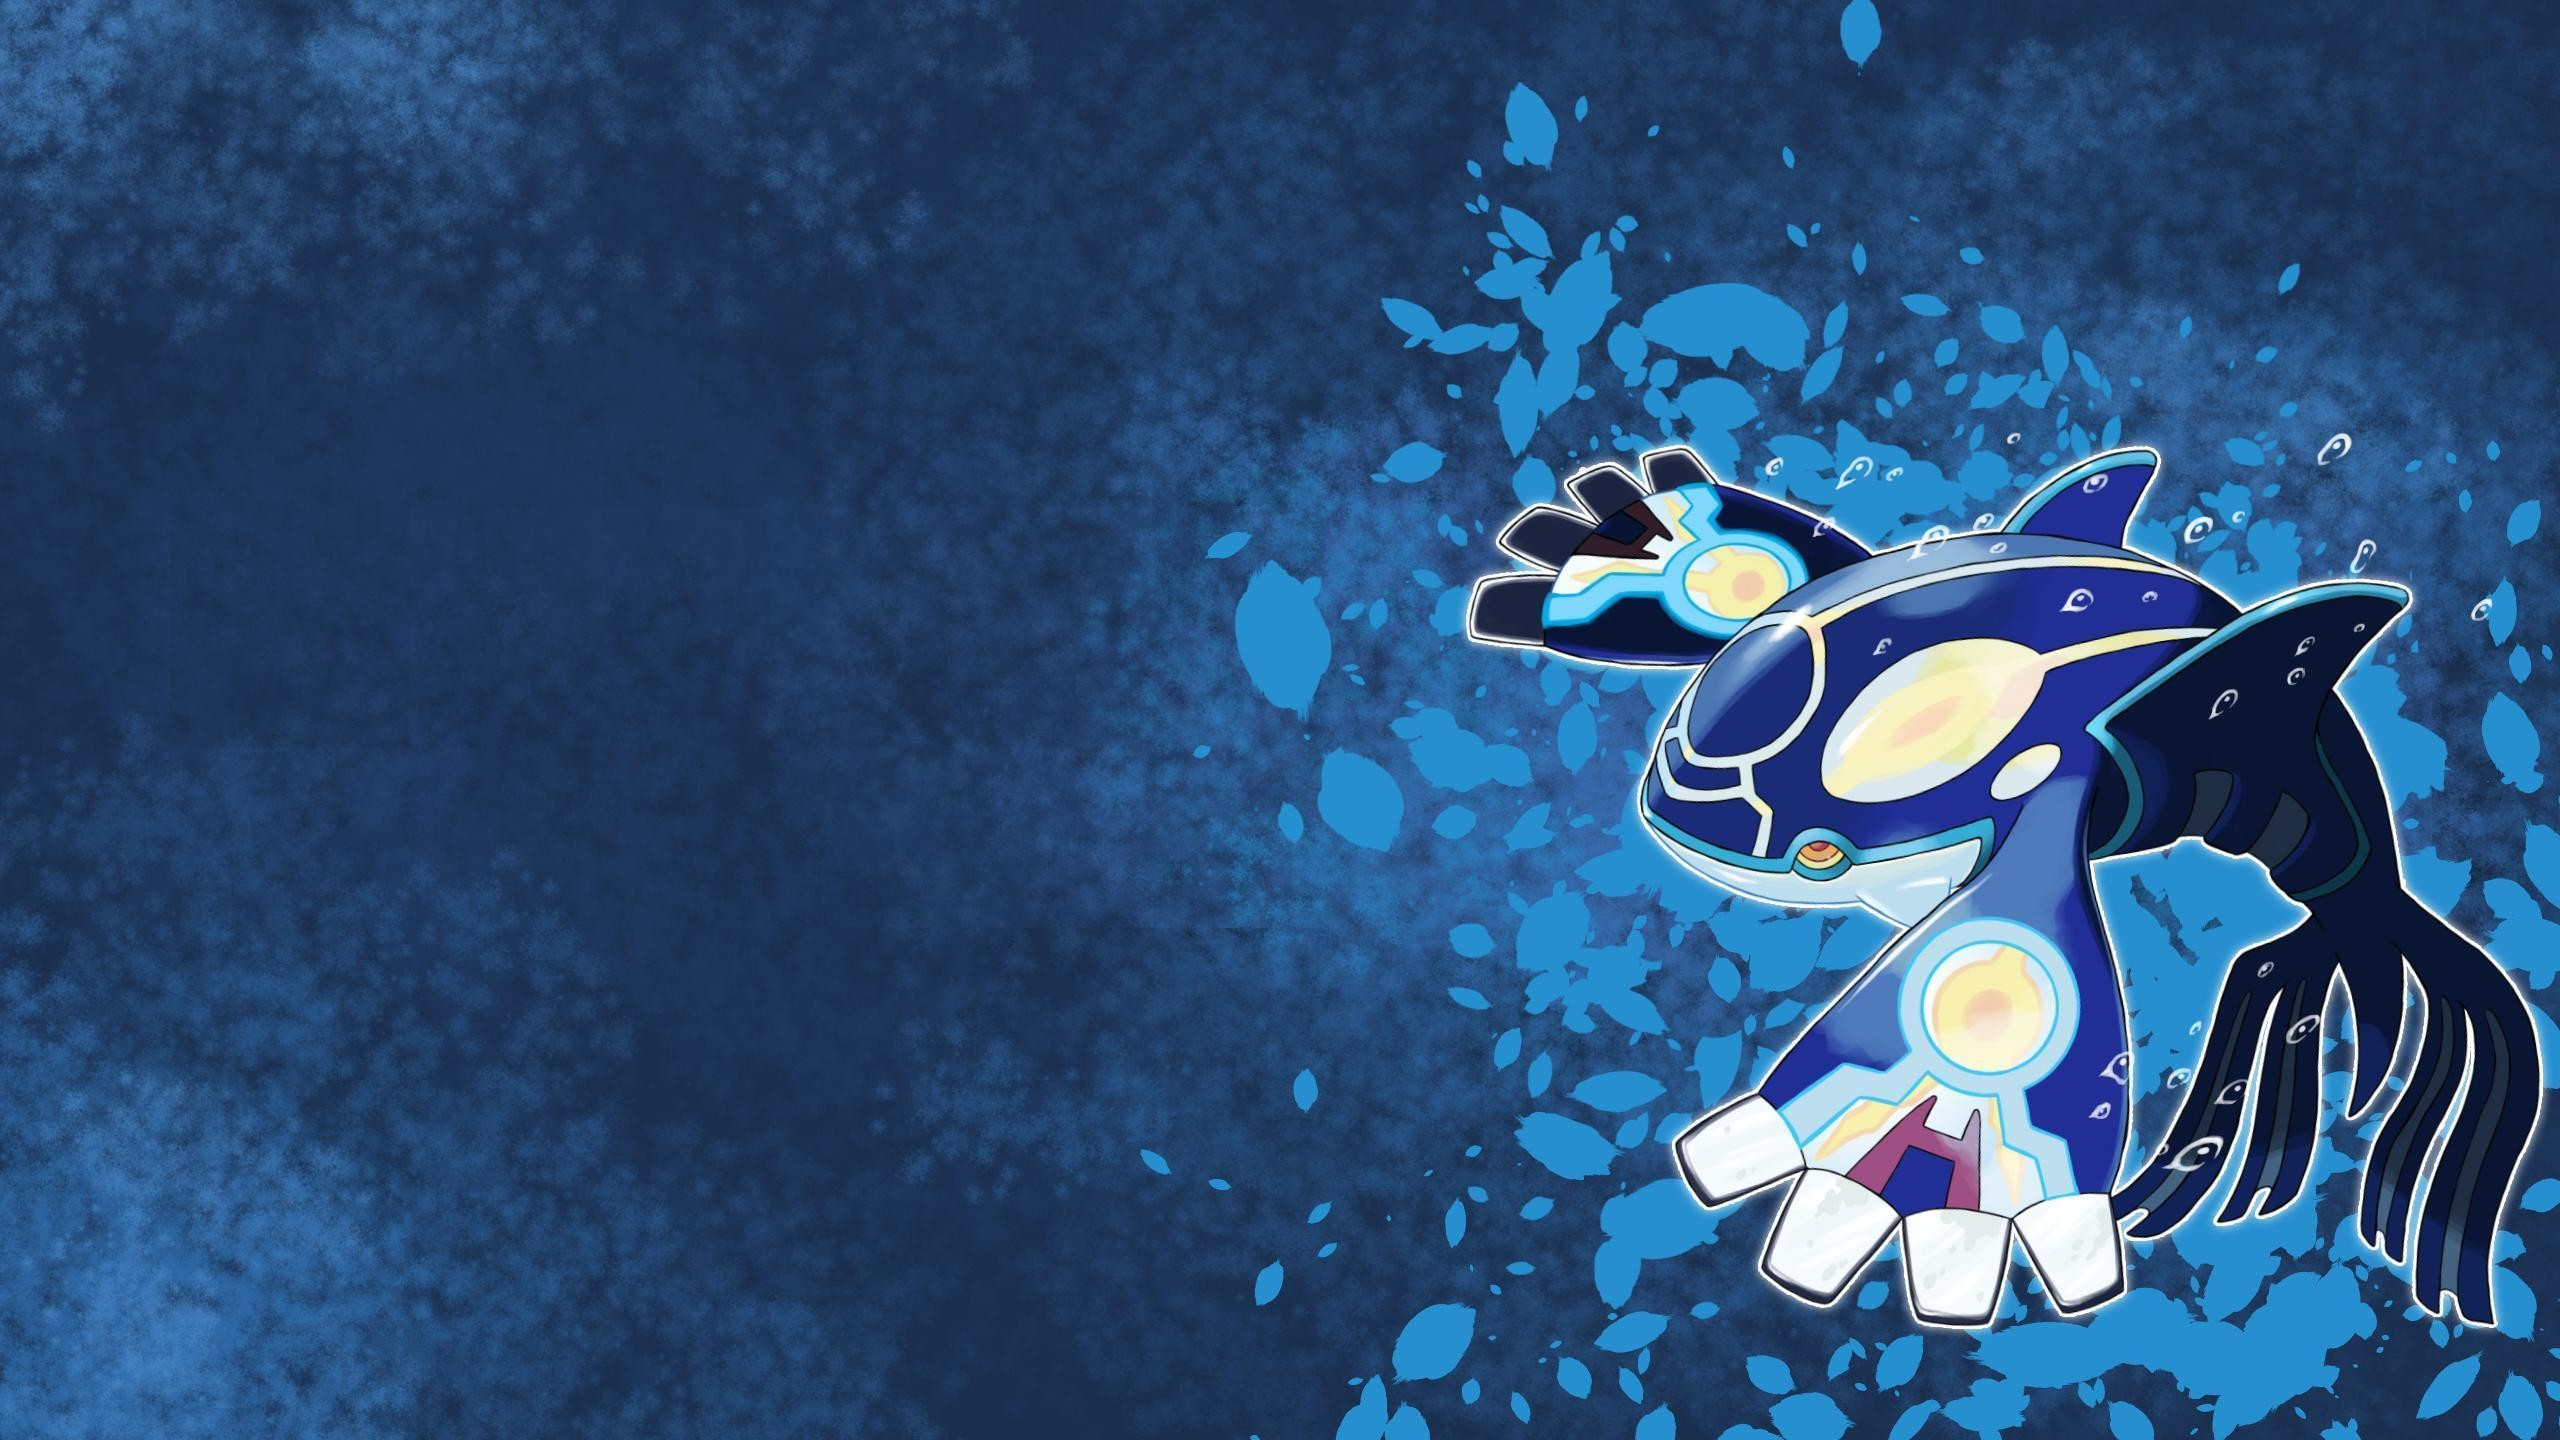 2560x1440 Wallpaper Primal Kyogre by AlouNea on DeviantArt